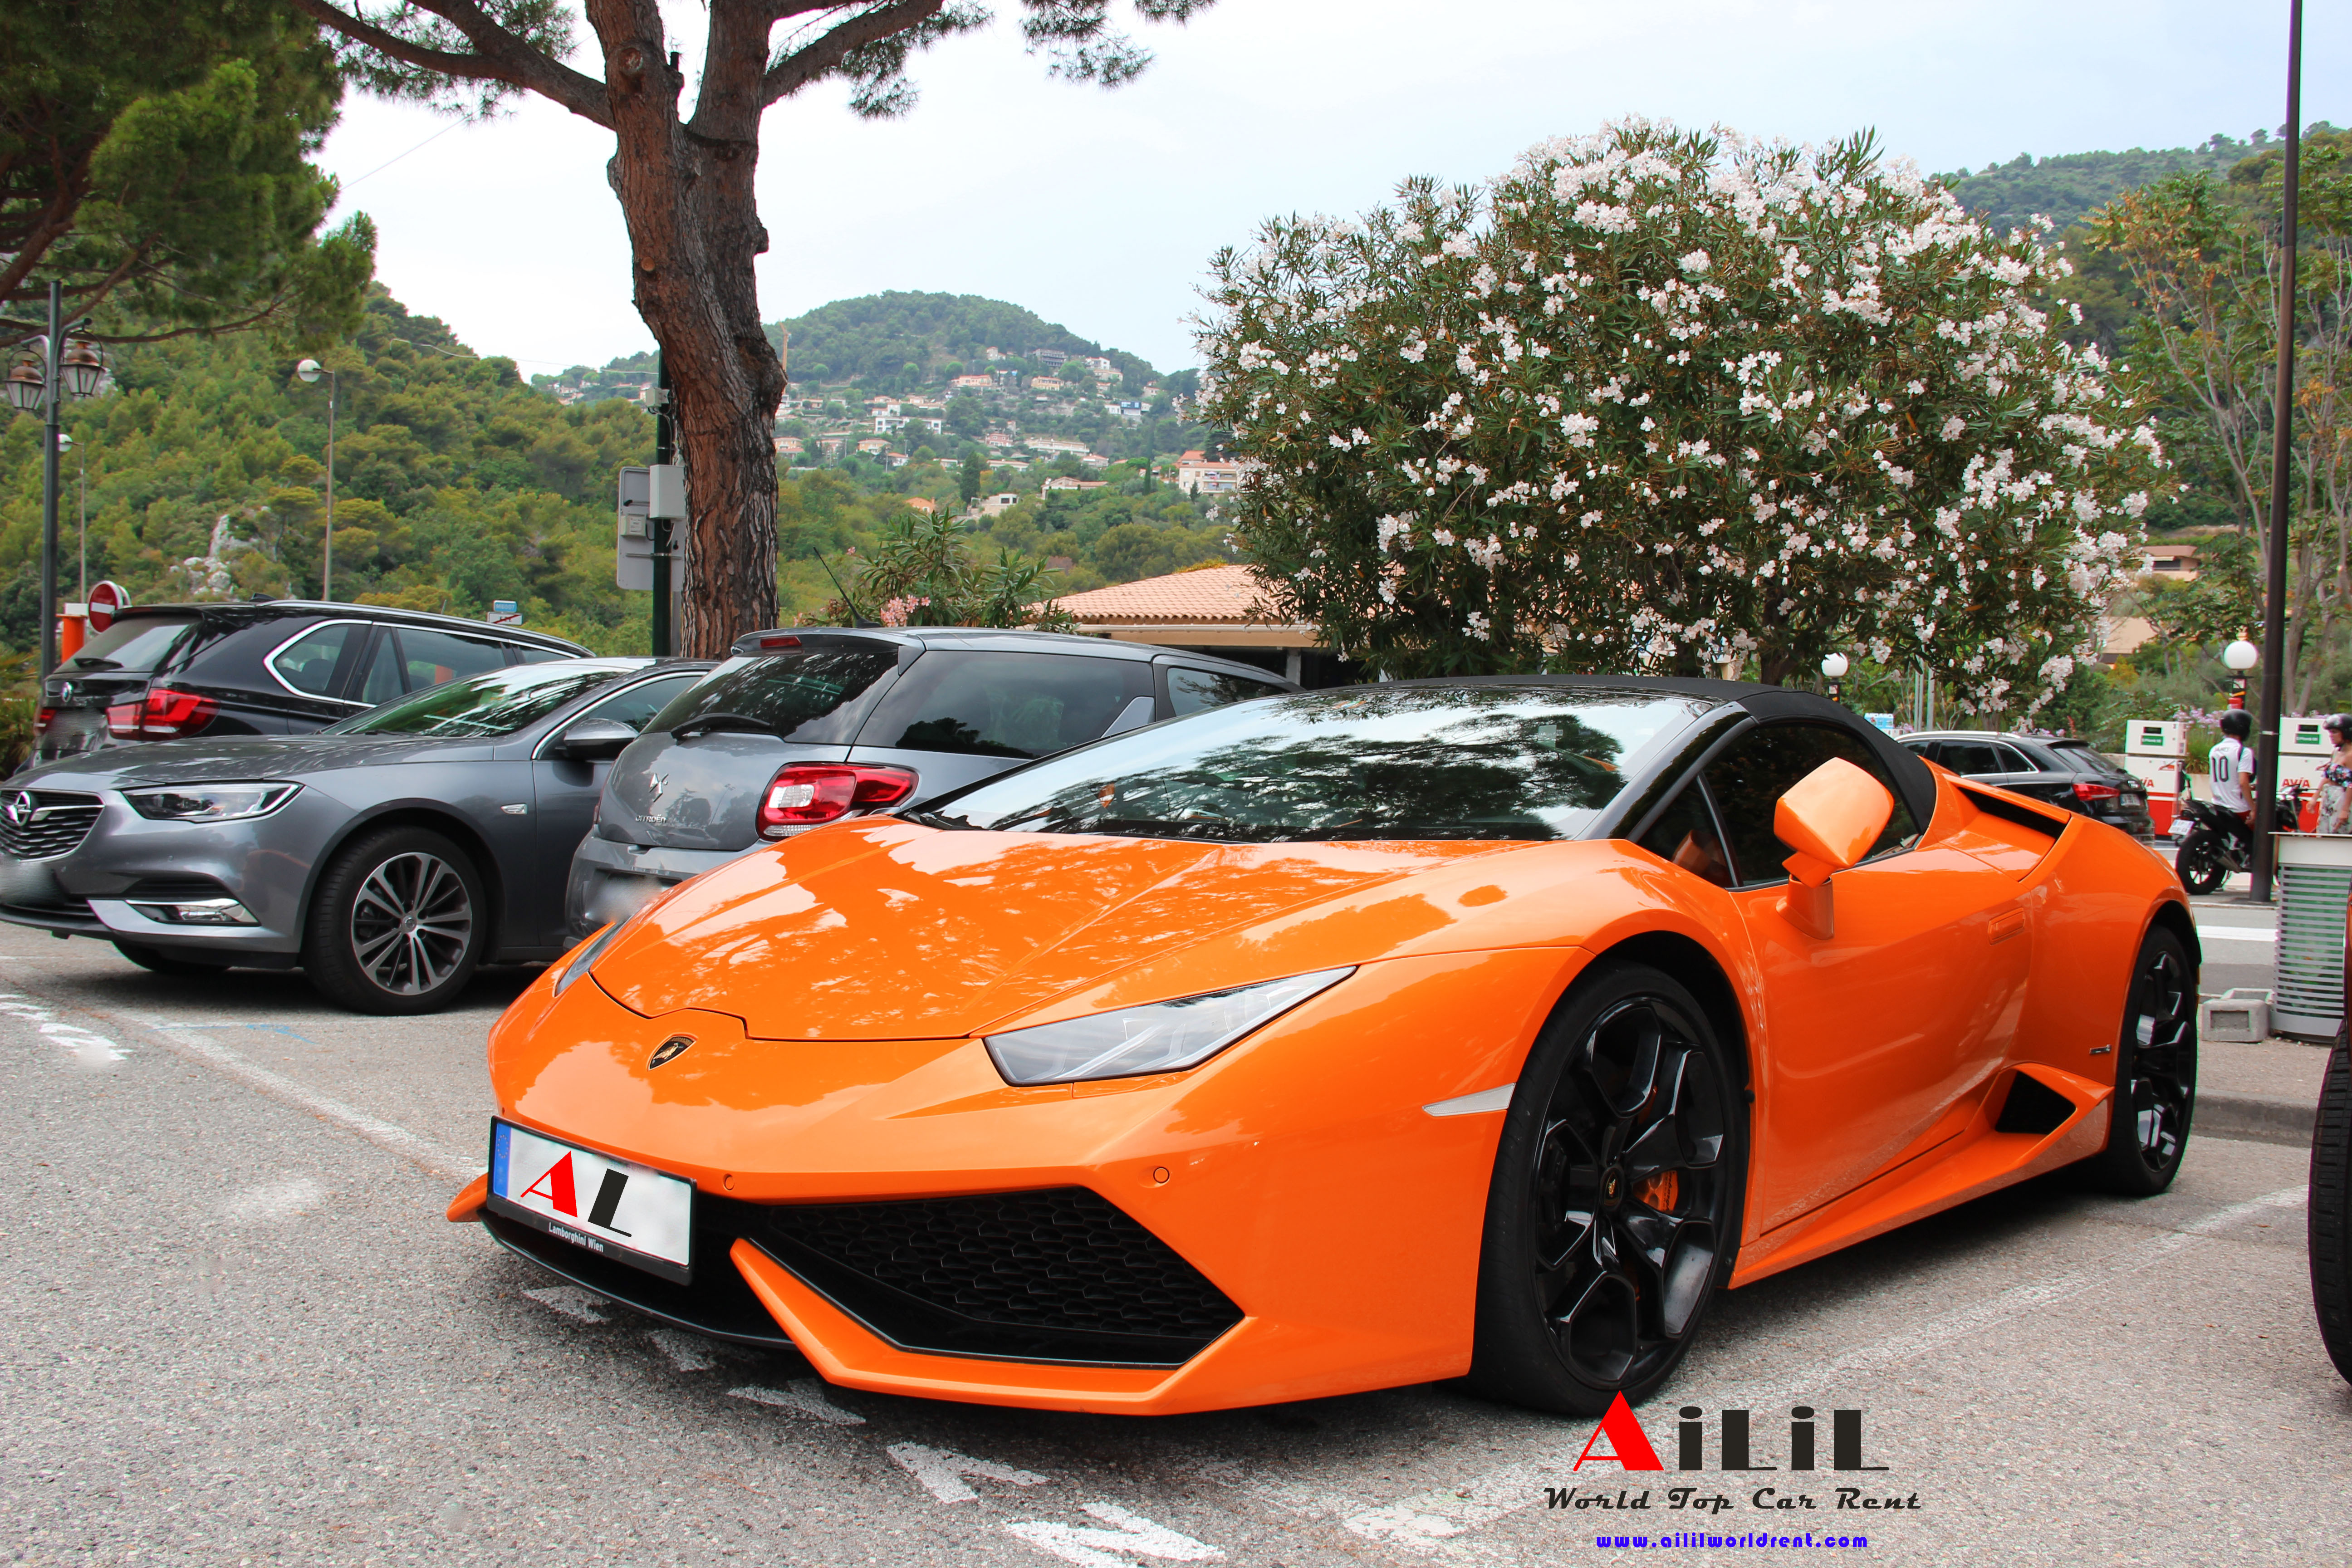 rent huracan spider in monaco, how can i drive huracan spider in monaco, where can i rent hirecan spide rin monaco